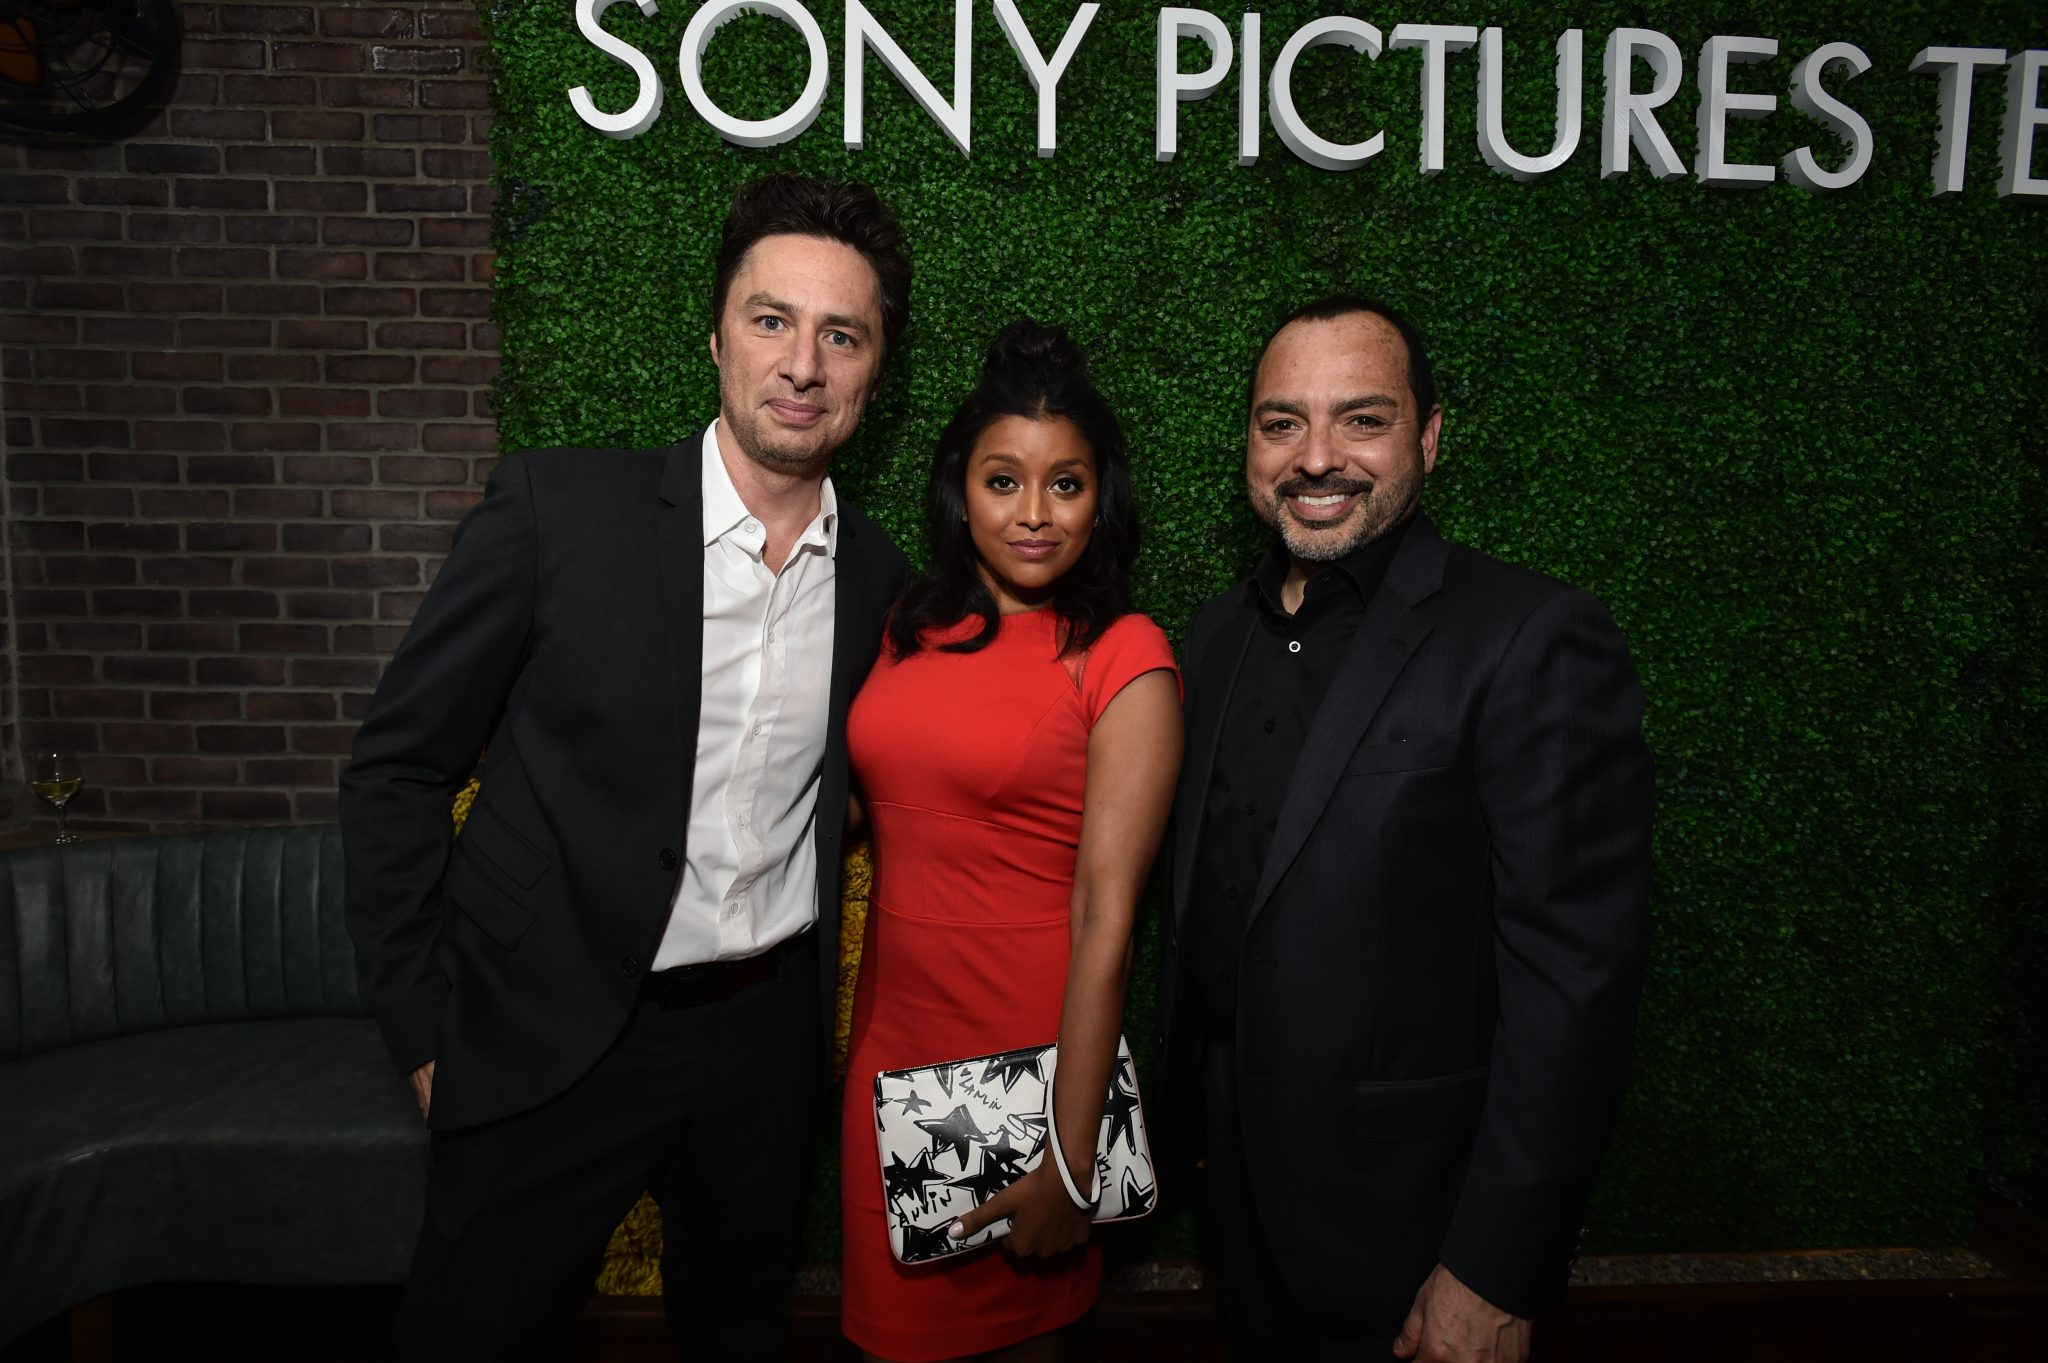 (L-R) Zach Braff & Tiya Sircar (Alex, Inc) with Sony EVP of international distribution, EMEA Angel Orengo, at an Sony Pictures Television party (May 24, 2017)